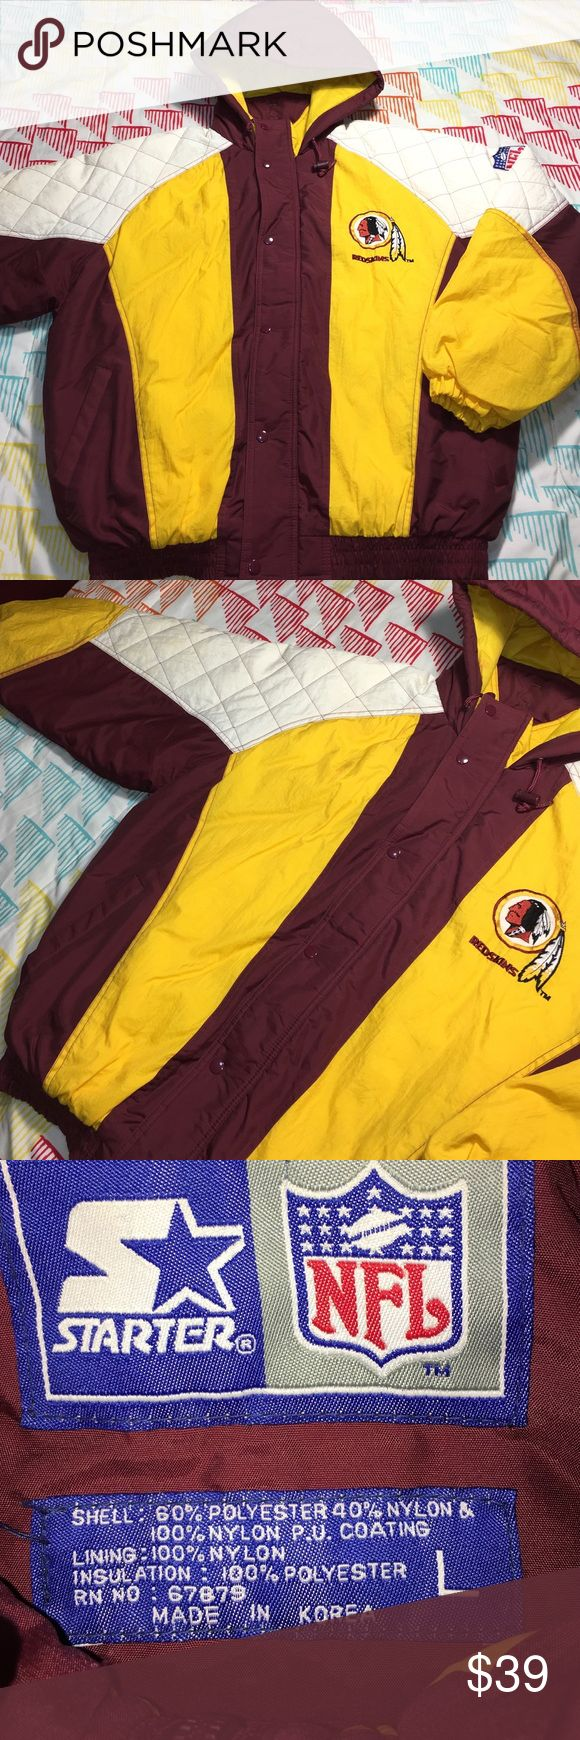 Washington Redskins Vintage NFL Football Jacket Size Large - Condition 9/10 - Some yellowing on the white and some red bleeding into the yellow only noticeable up close. Super nice jacket for being 20+ years old Starter Jackets & Coats Puffers